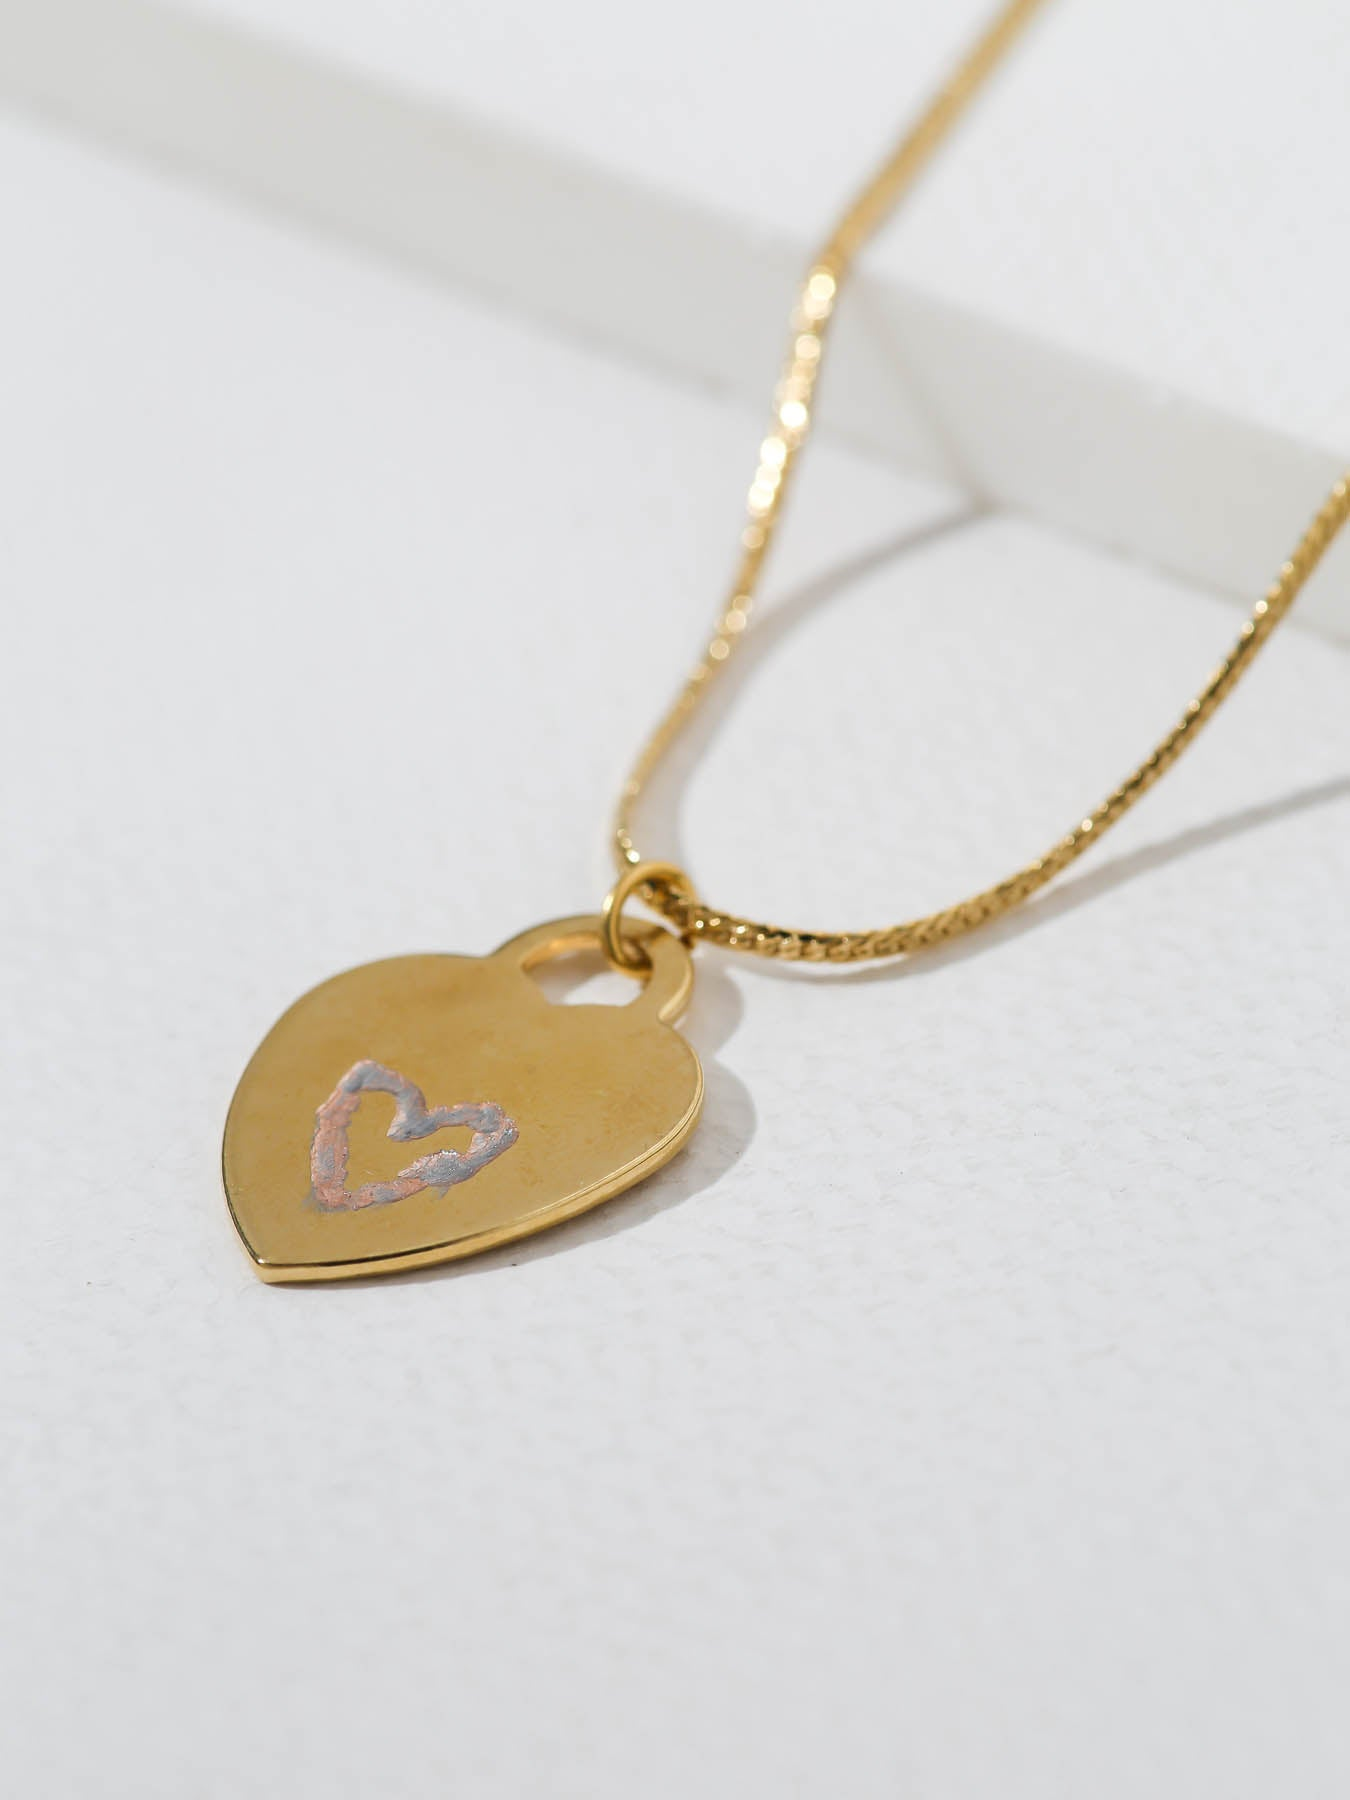 The Engraved Heart Necklace